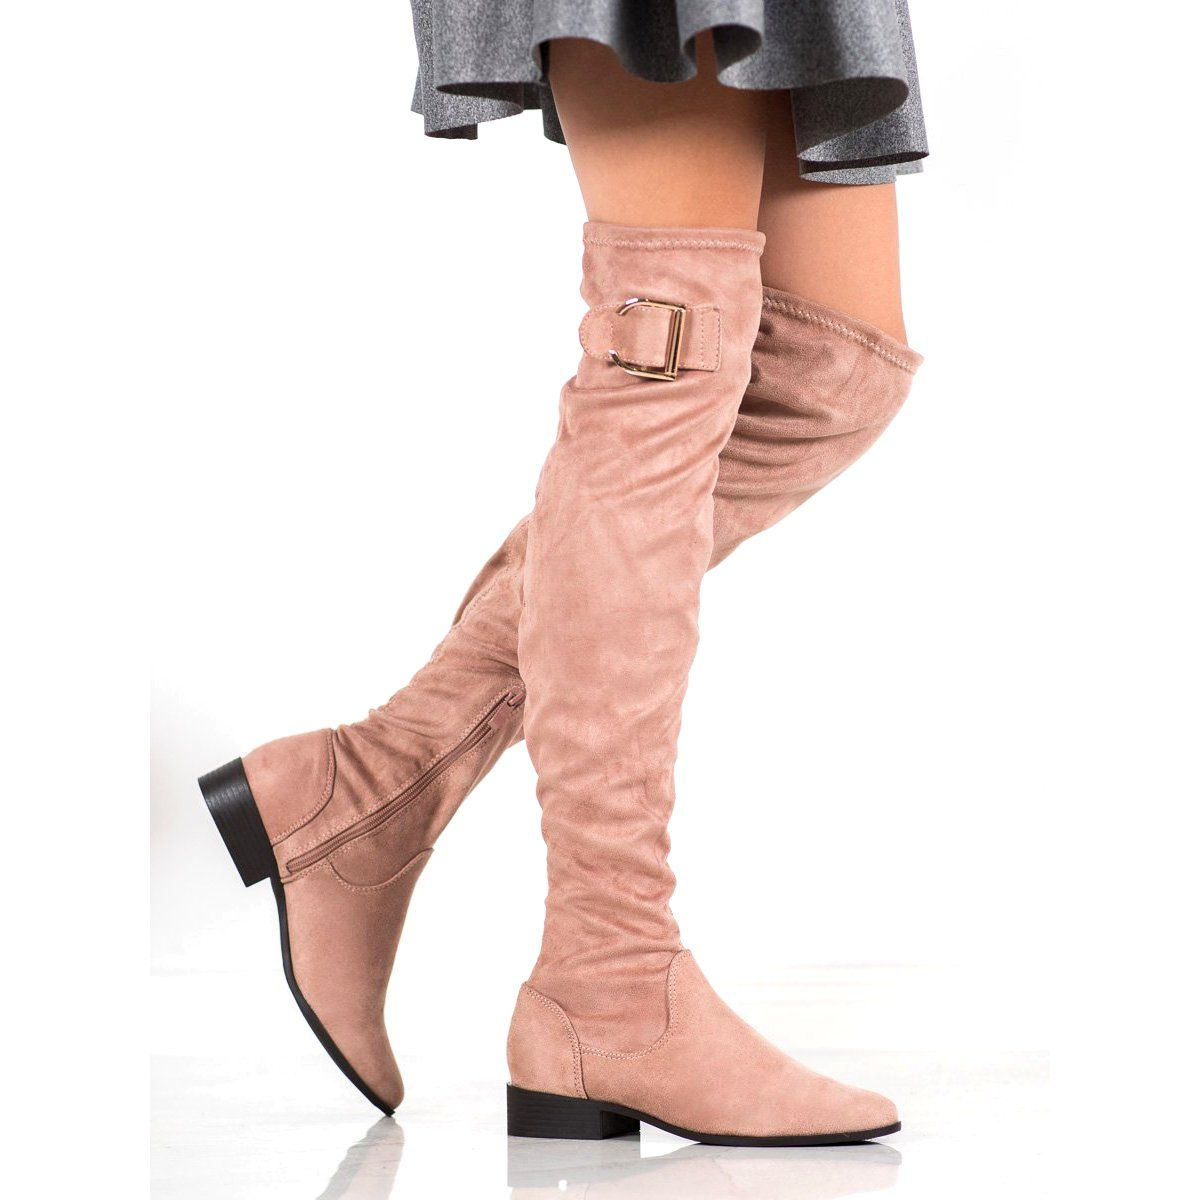 Boots Women S Jumex Jumex Elegant Boots With A Buckle Pink Elegant Boots Boots Buckled Heels